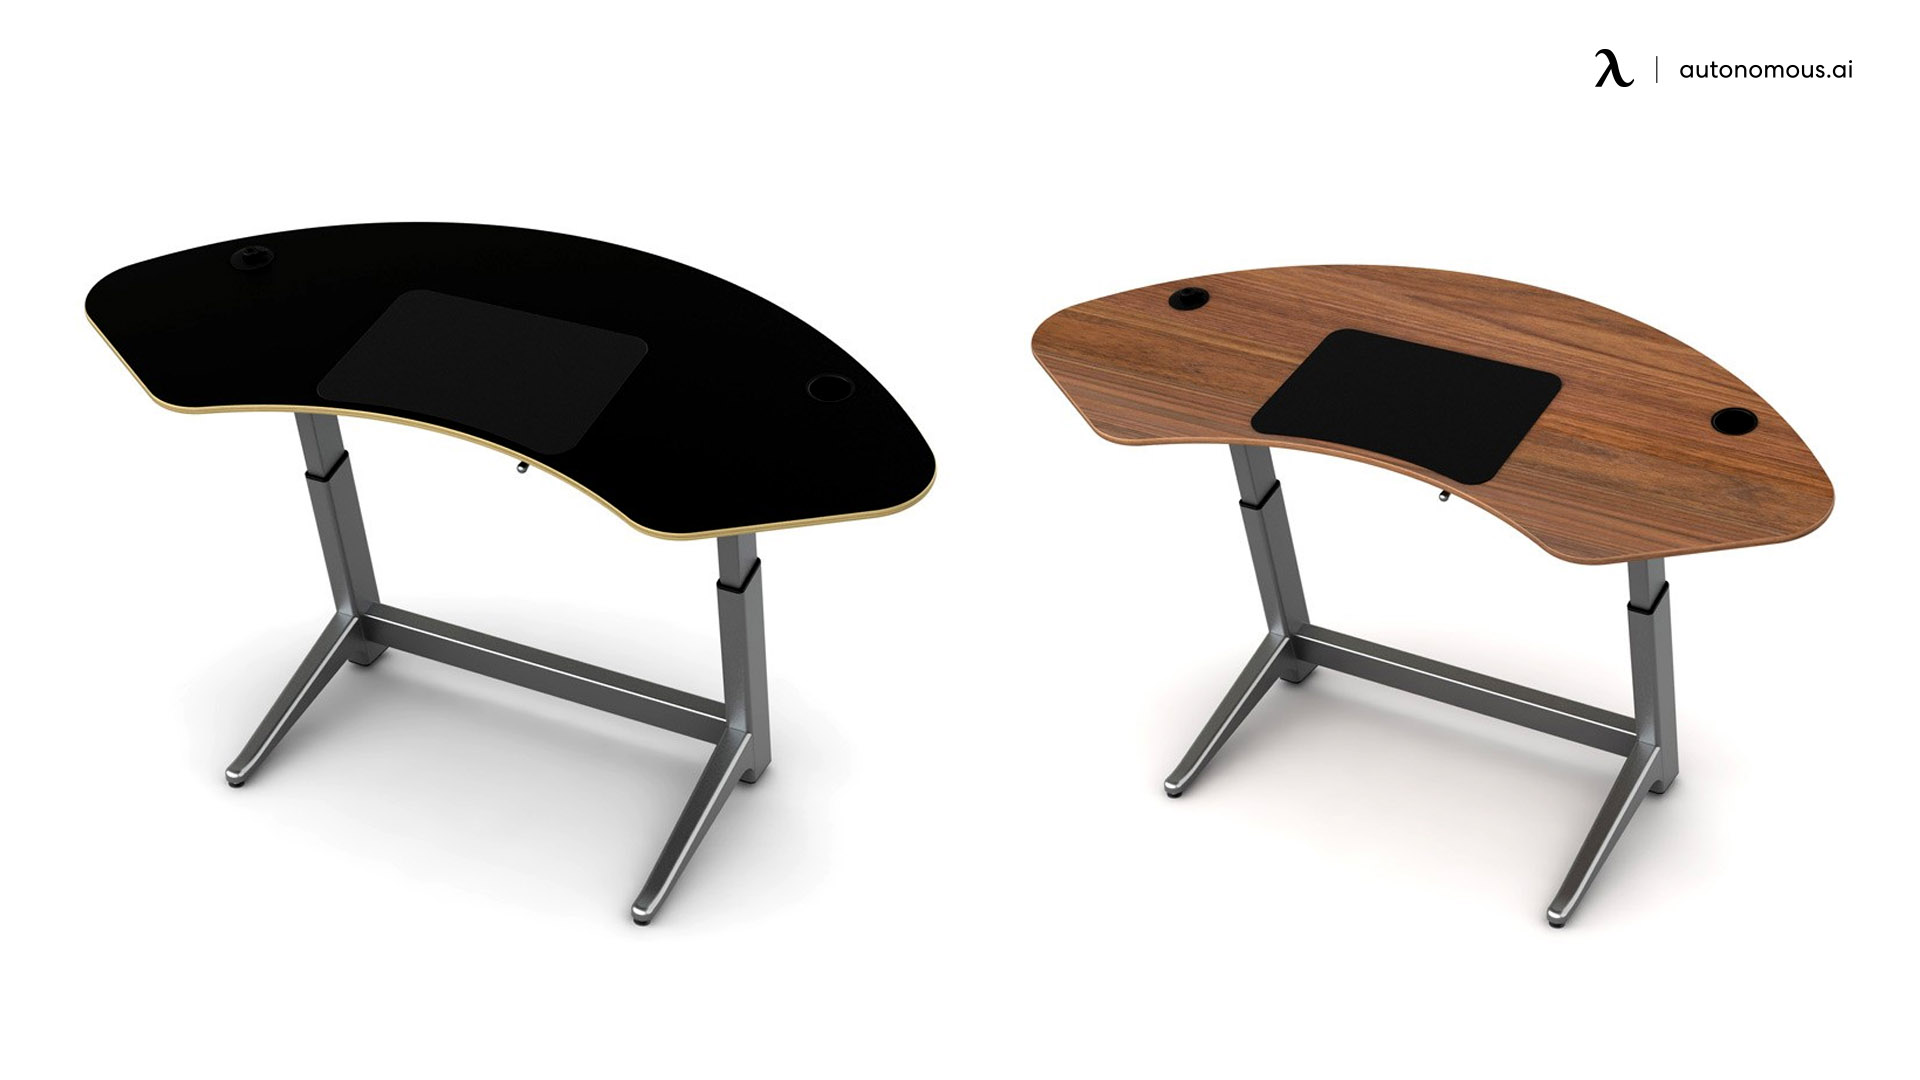 Sphere Standing Desk by Focal Upright Furniture